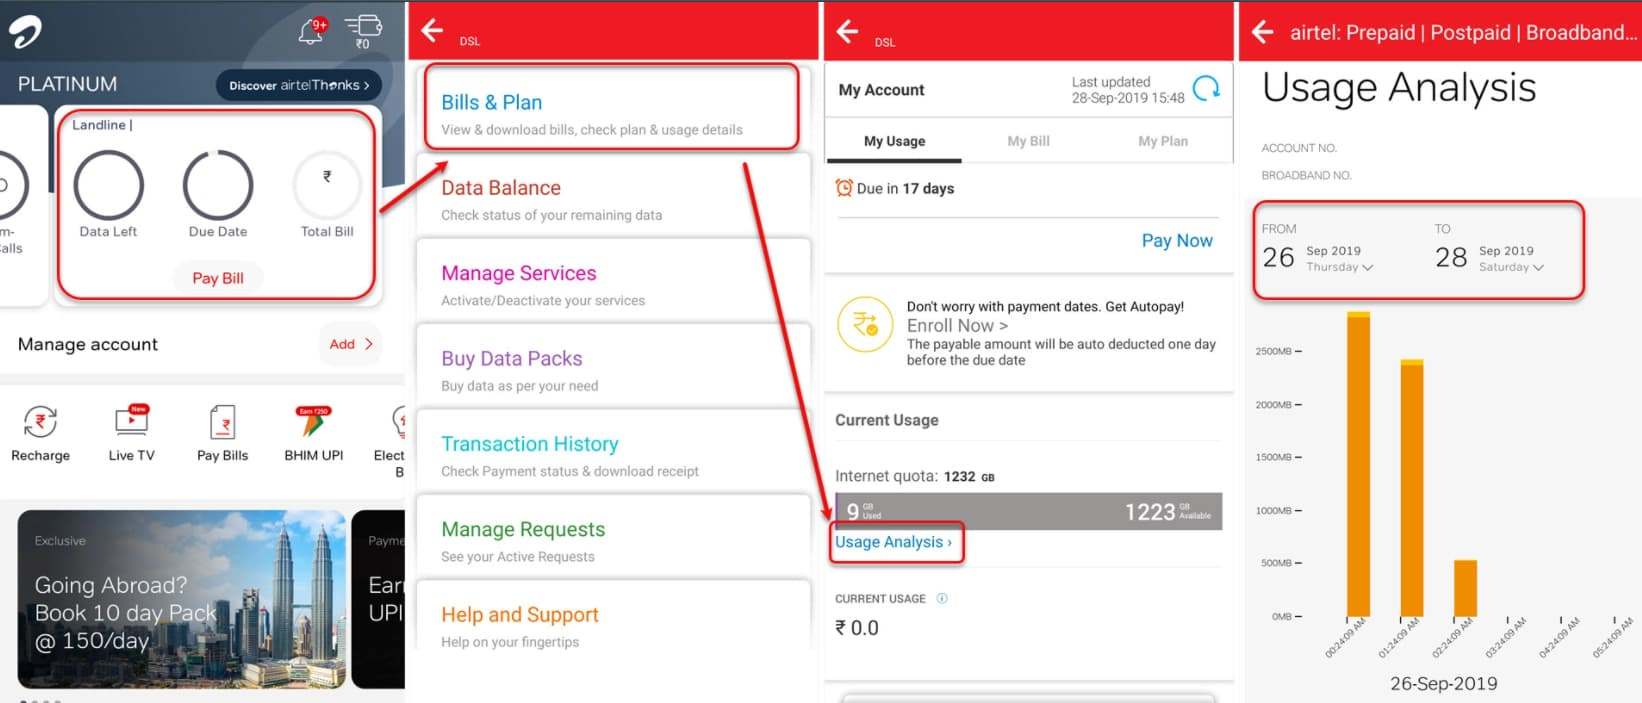 How to find Airtel broadband usage?